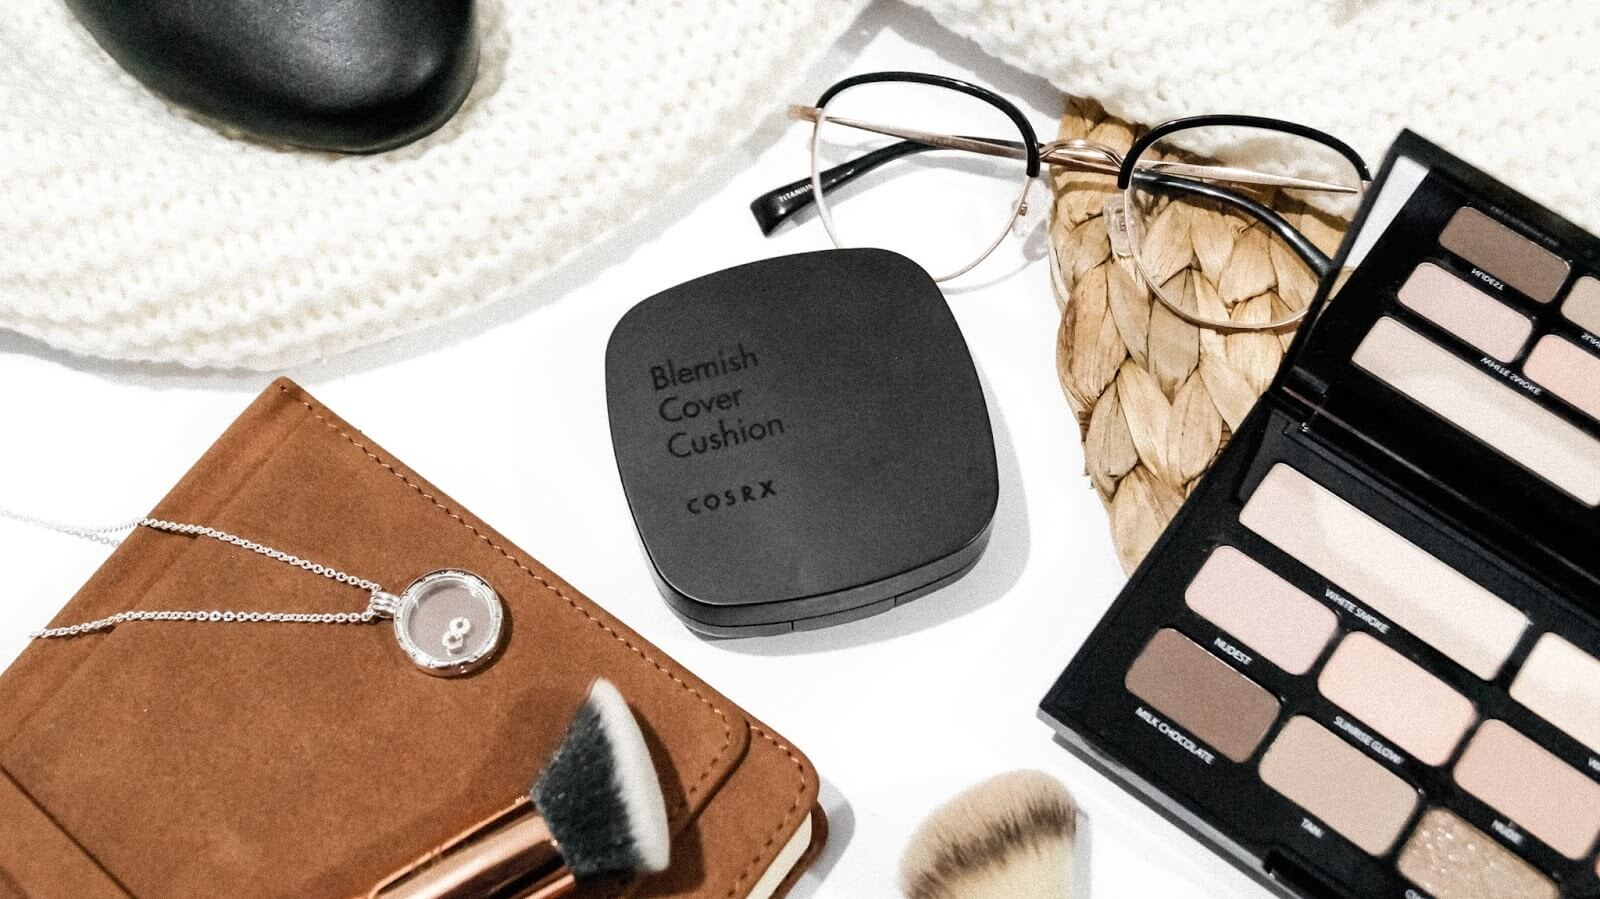 review COSRX Blemish Cover Cushion